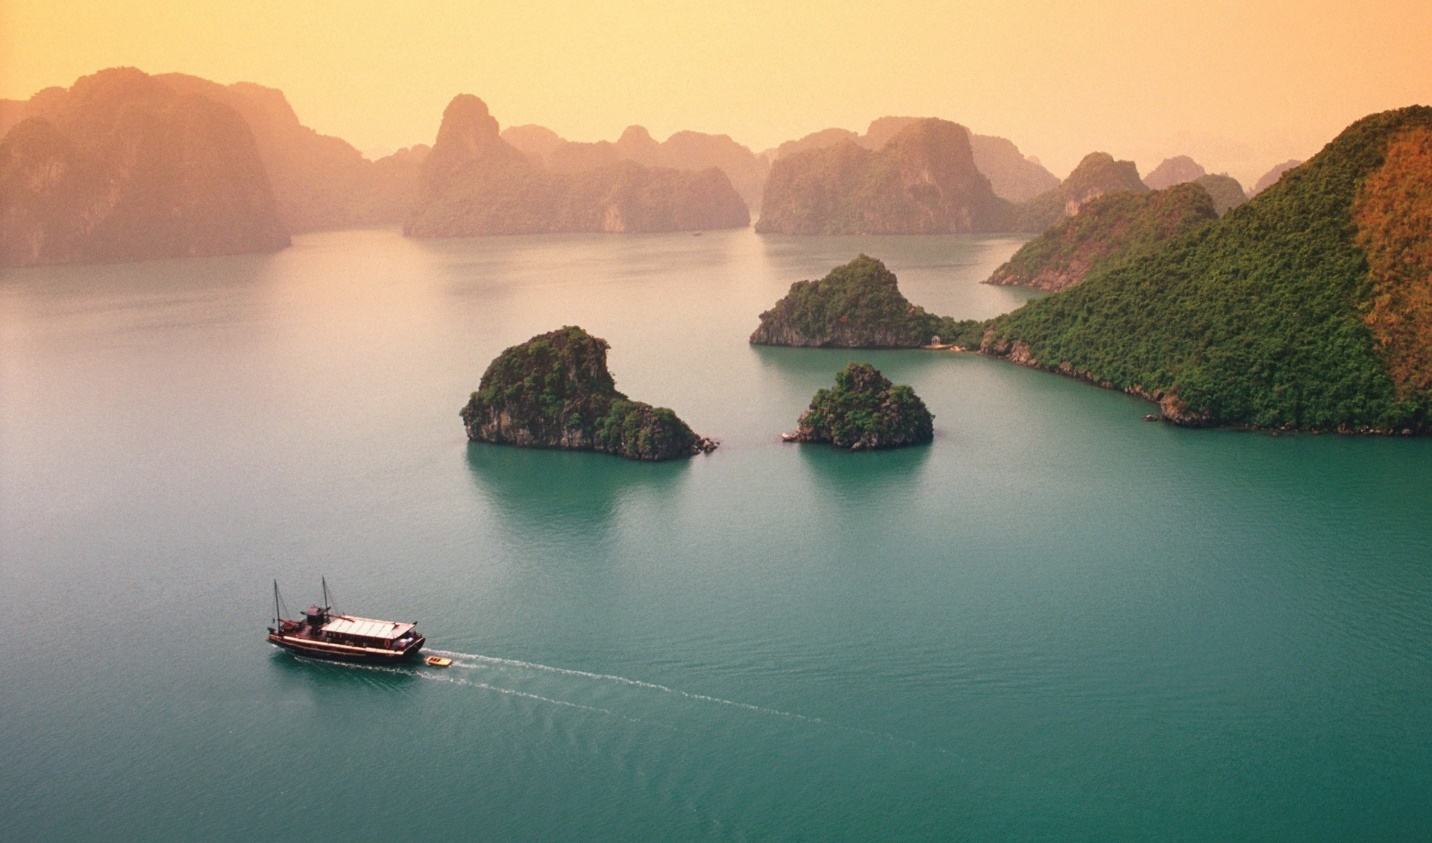 The beauty of Halong in the winter